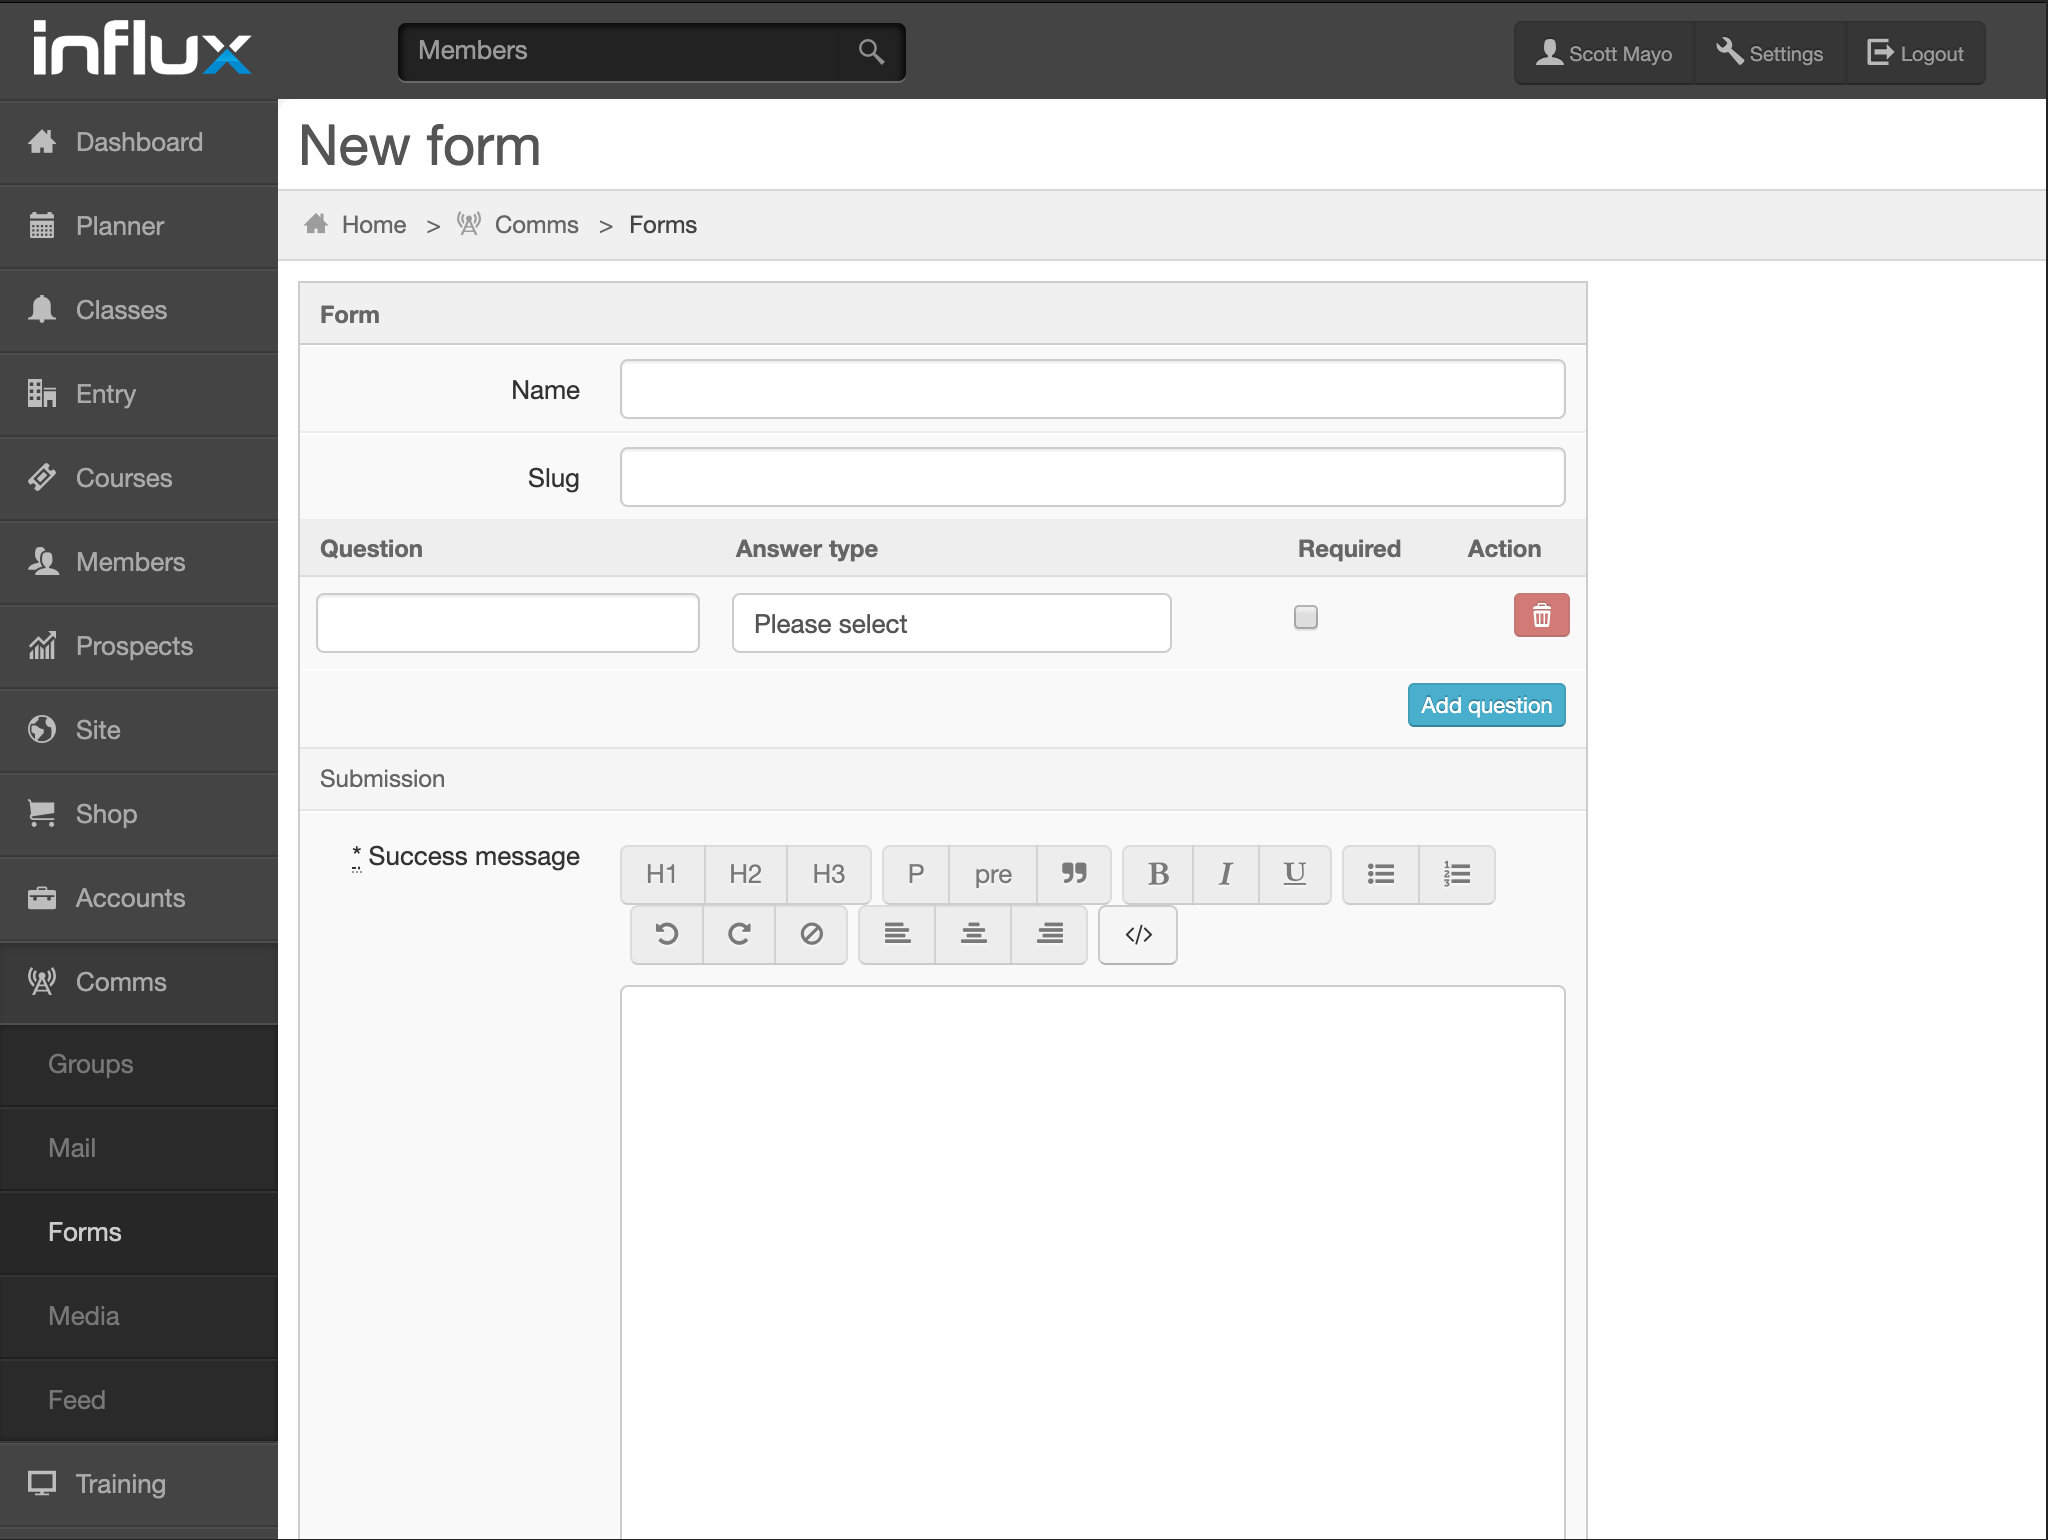 Creating a new custom form in Influx